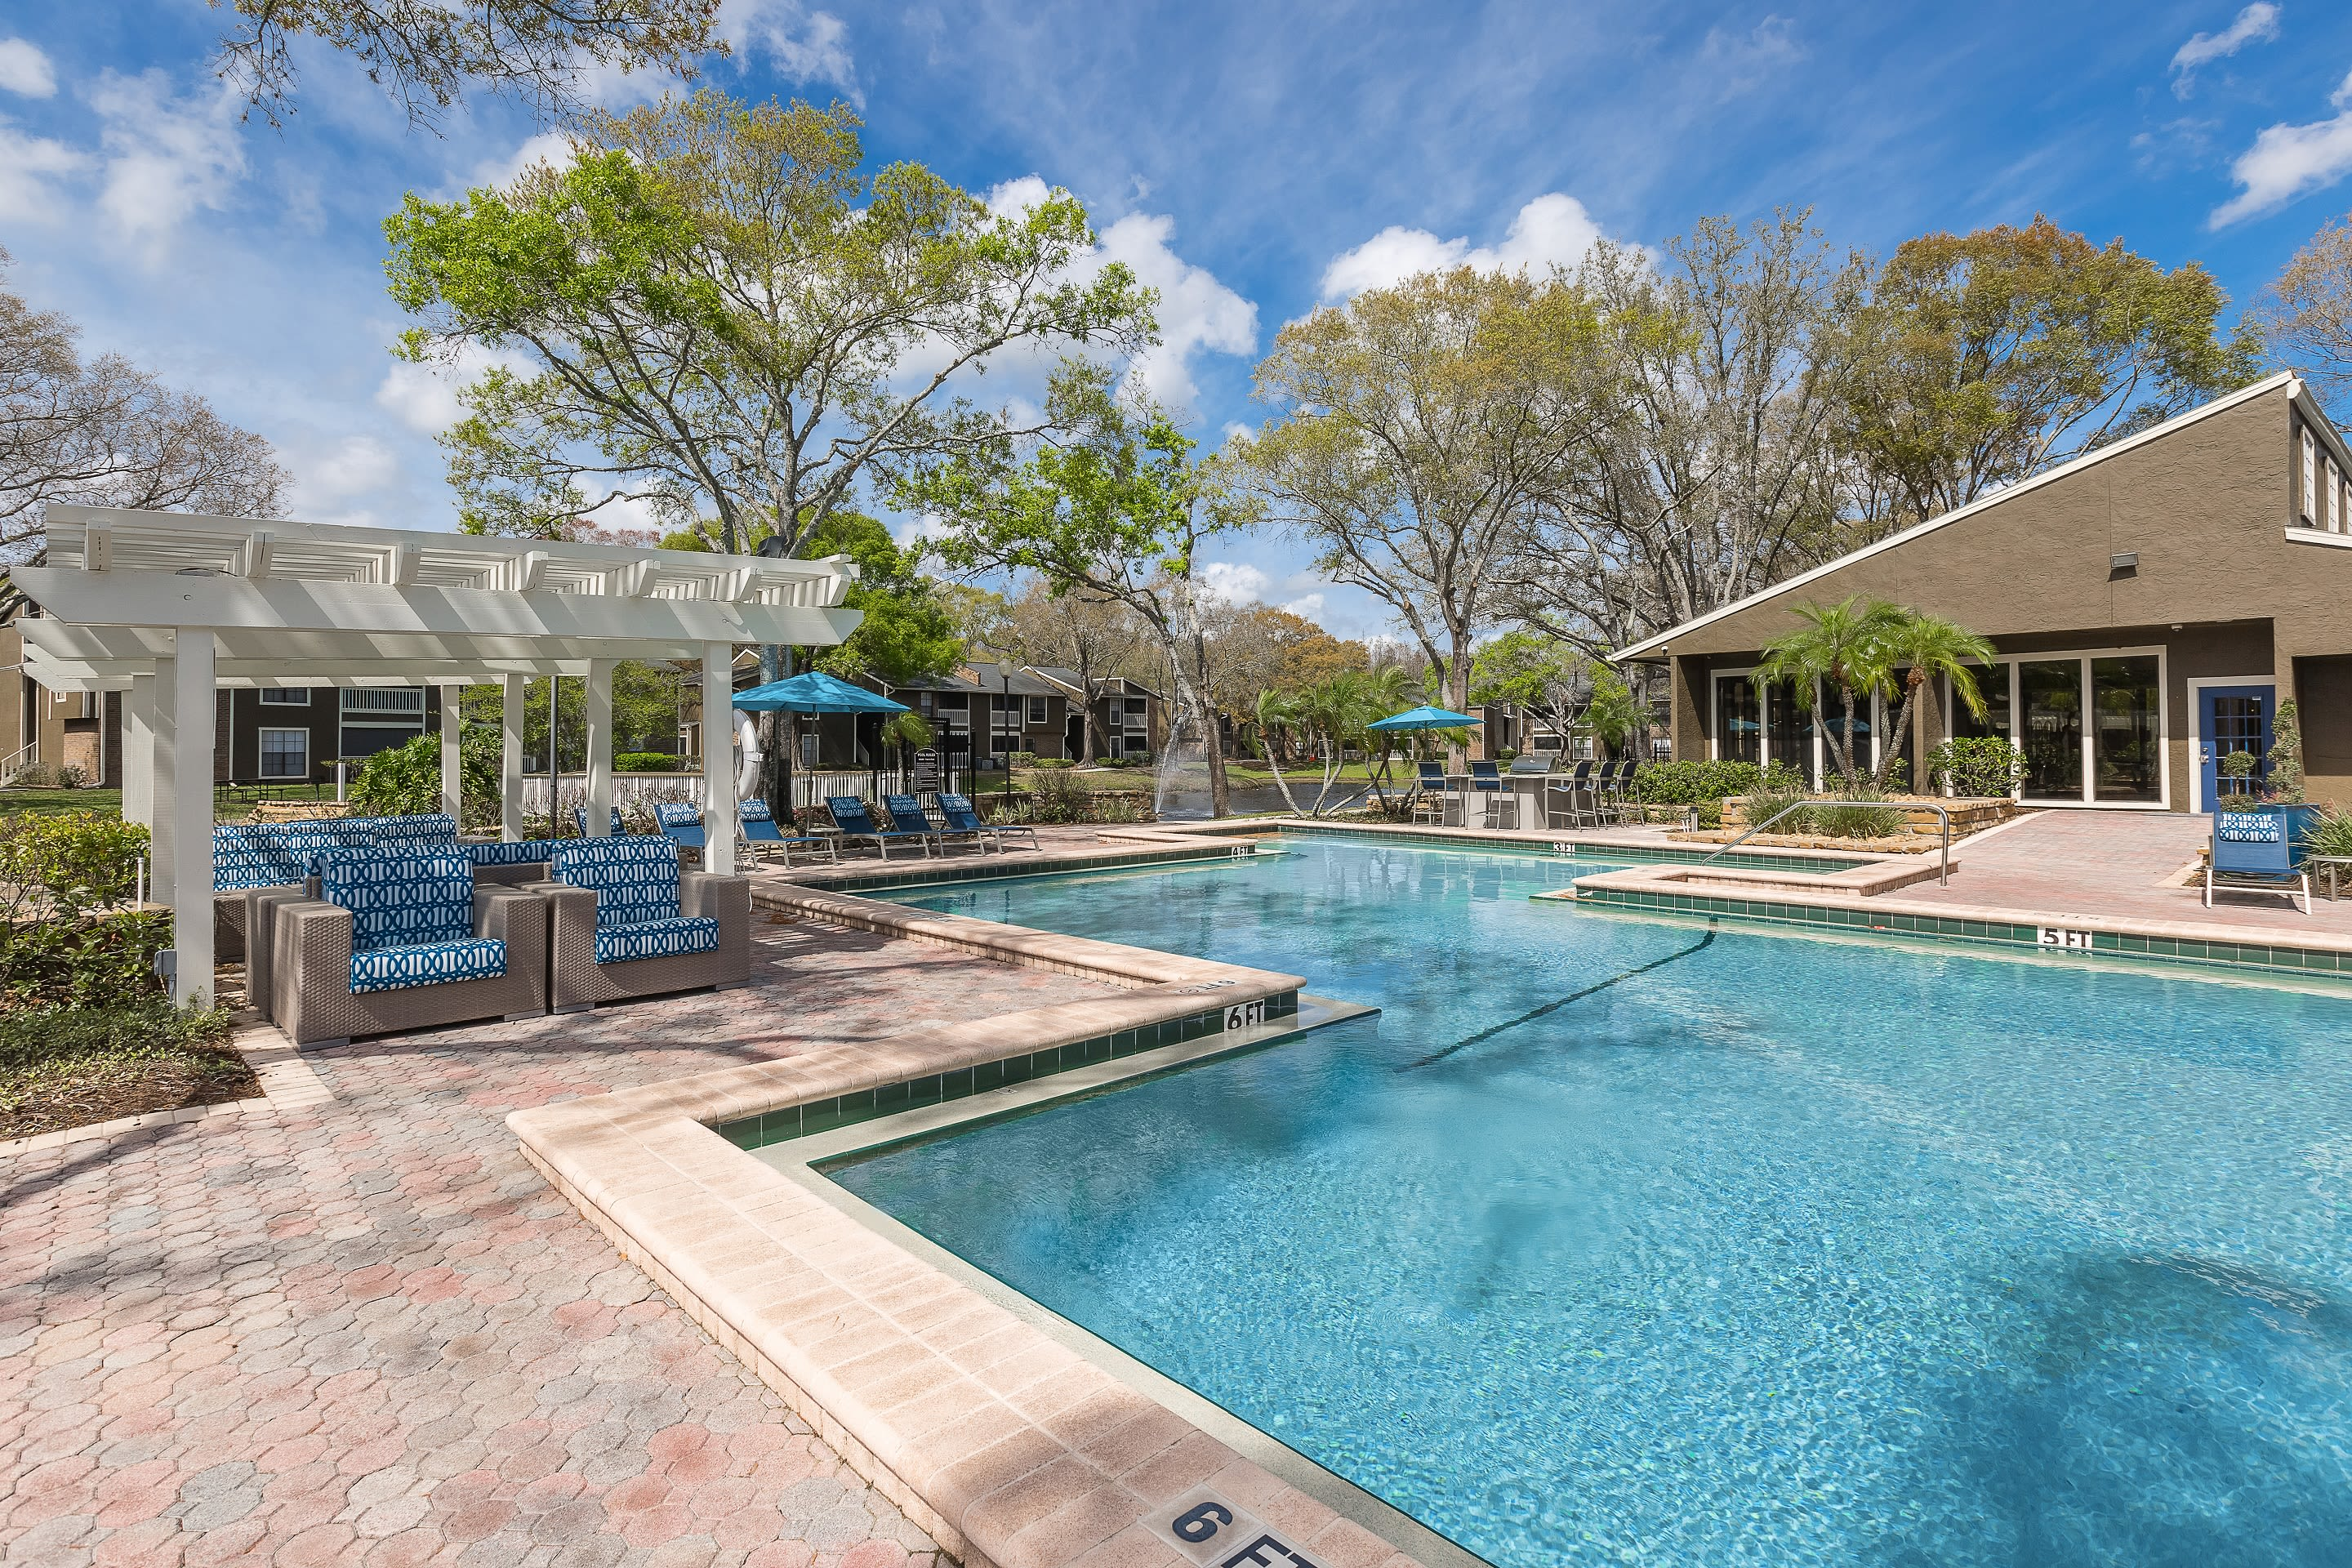 Exterior view of the swimming pool at Avion at Carrollwood in Tampa, Florida